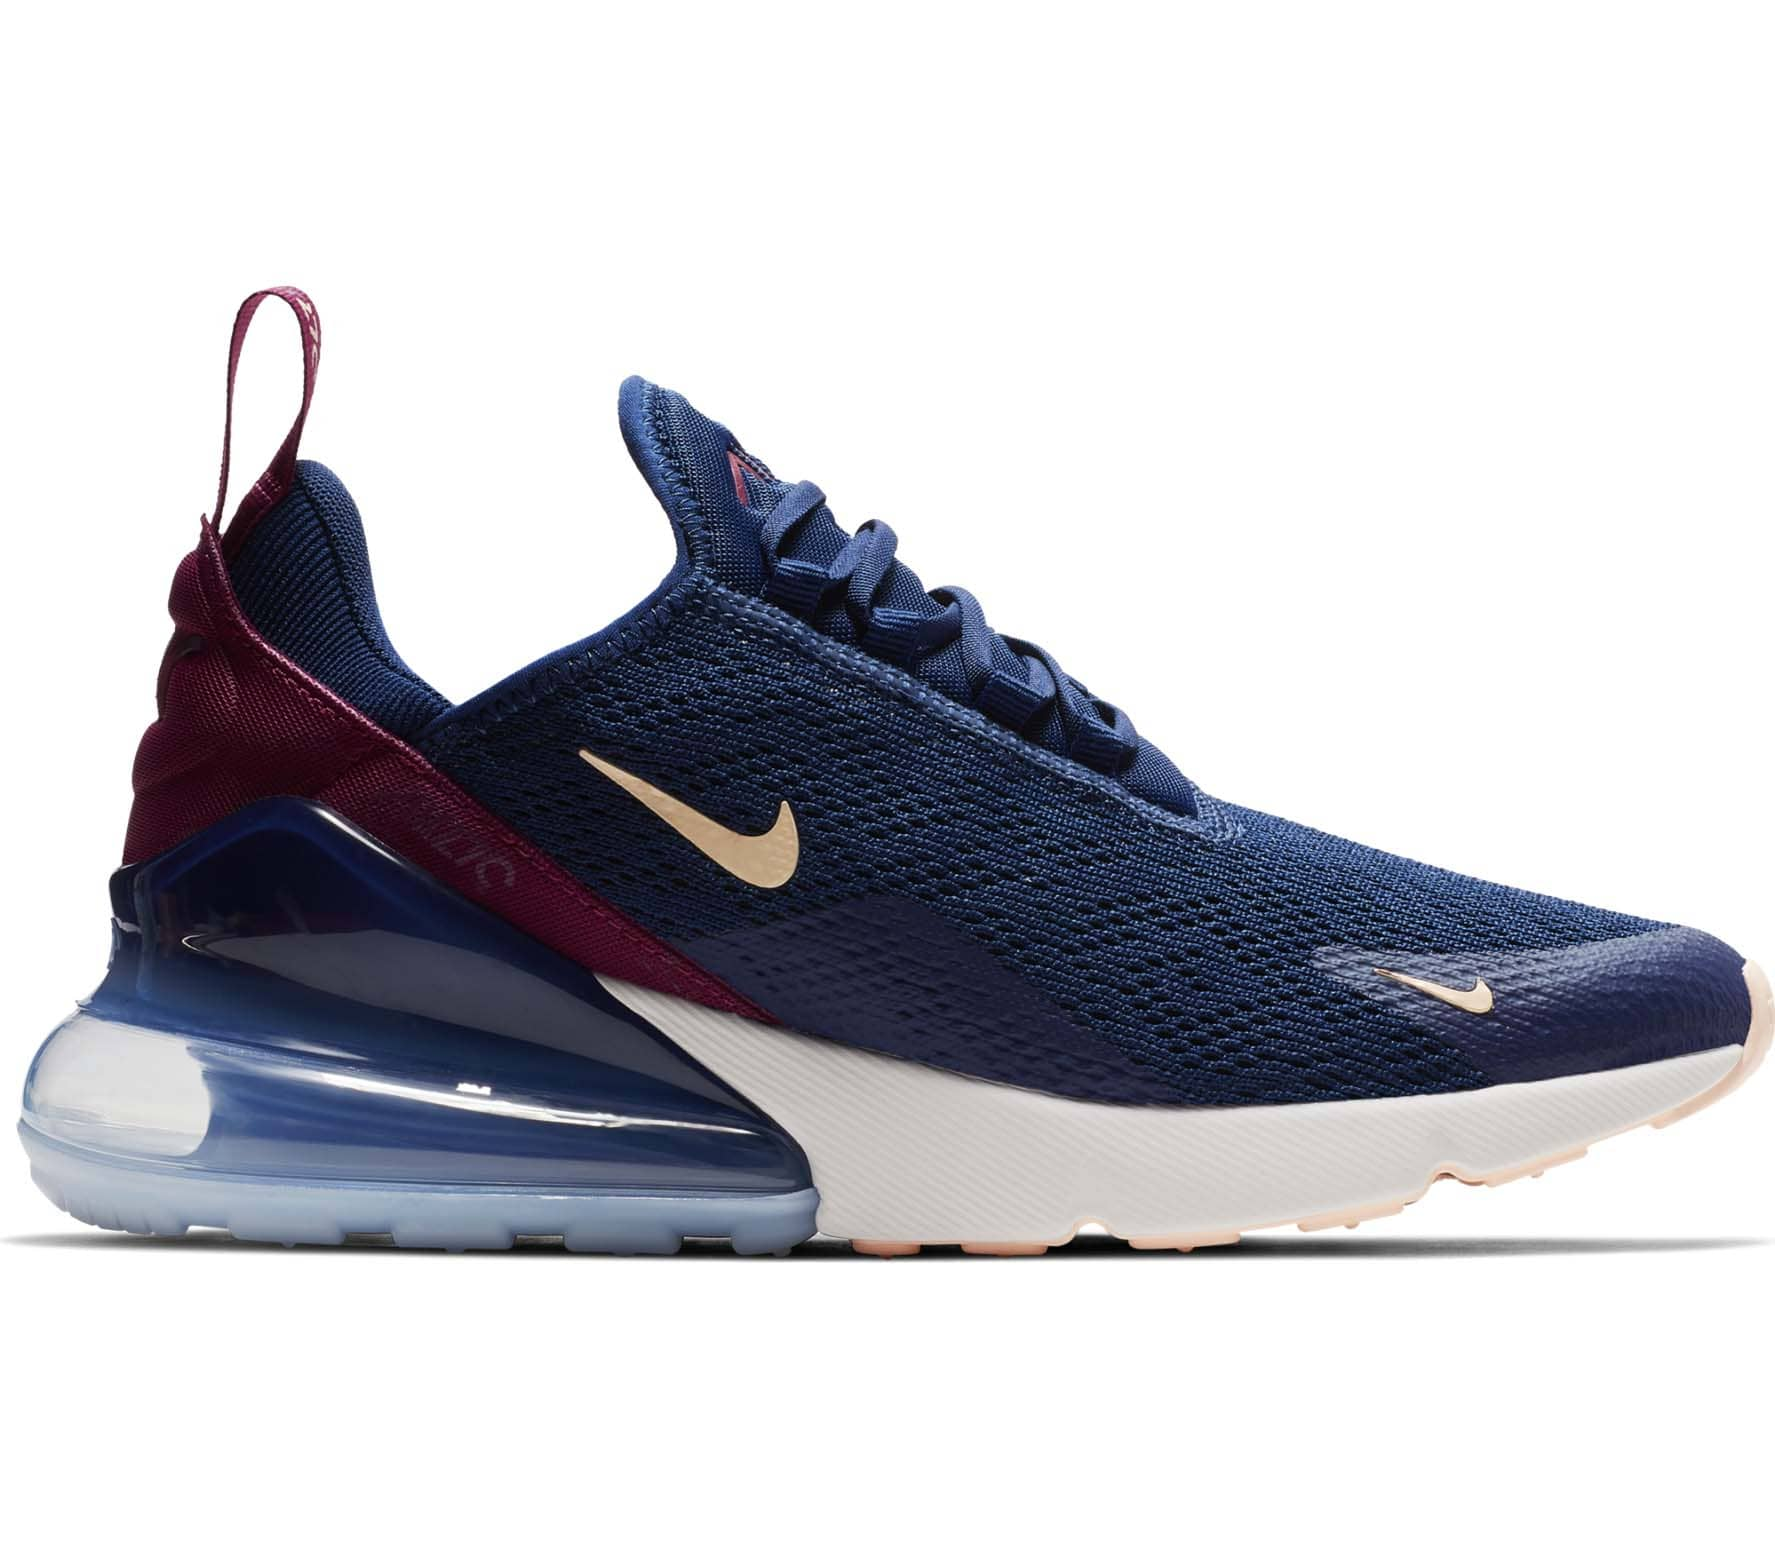 nike sportswear air max 270 damen sneaker blau online. Black Bedroom Furniture Sets. Home Design Ideas